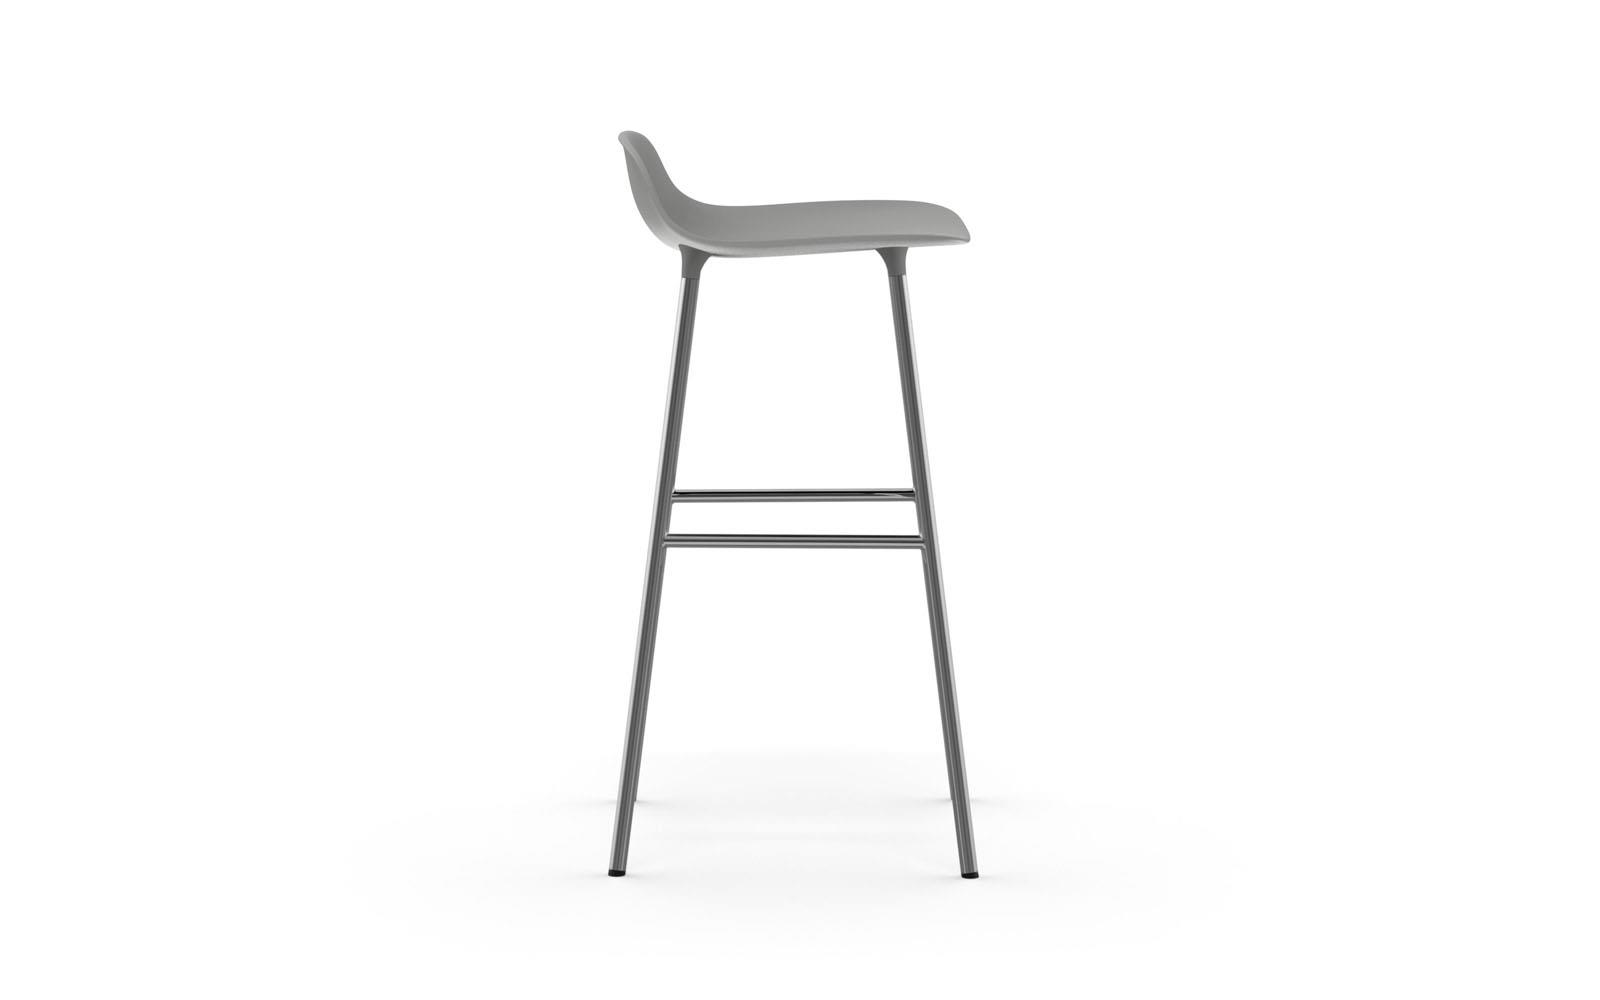 Picture of: Form Barstool Molded Plastic Shell Chair With Chrome Legs